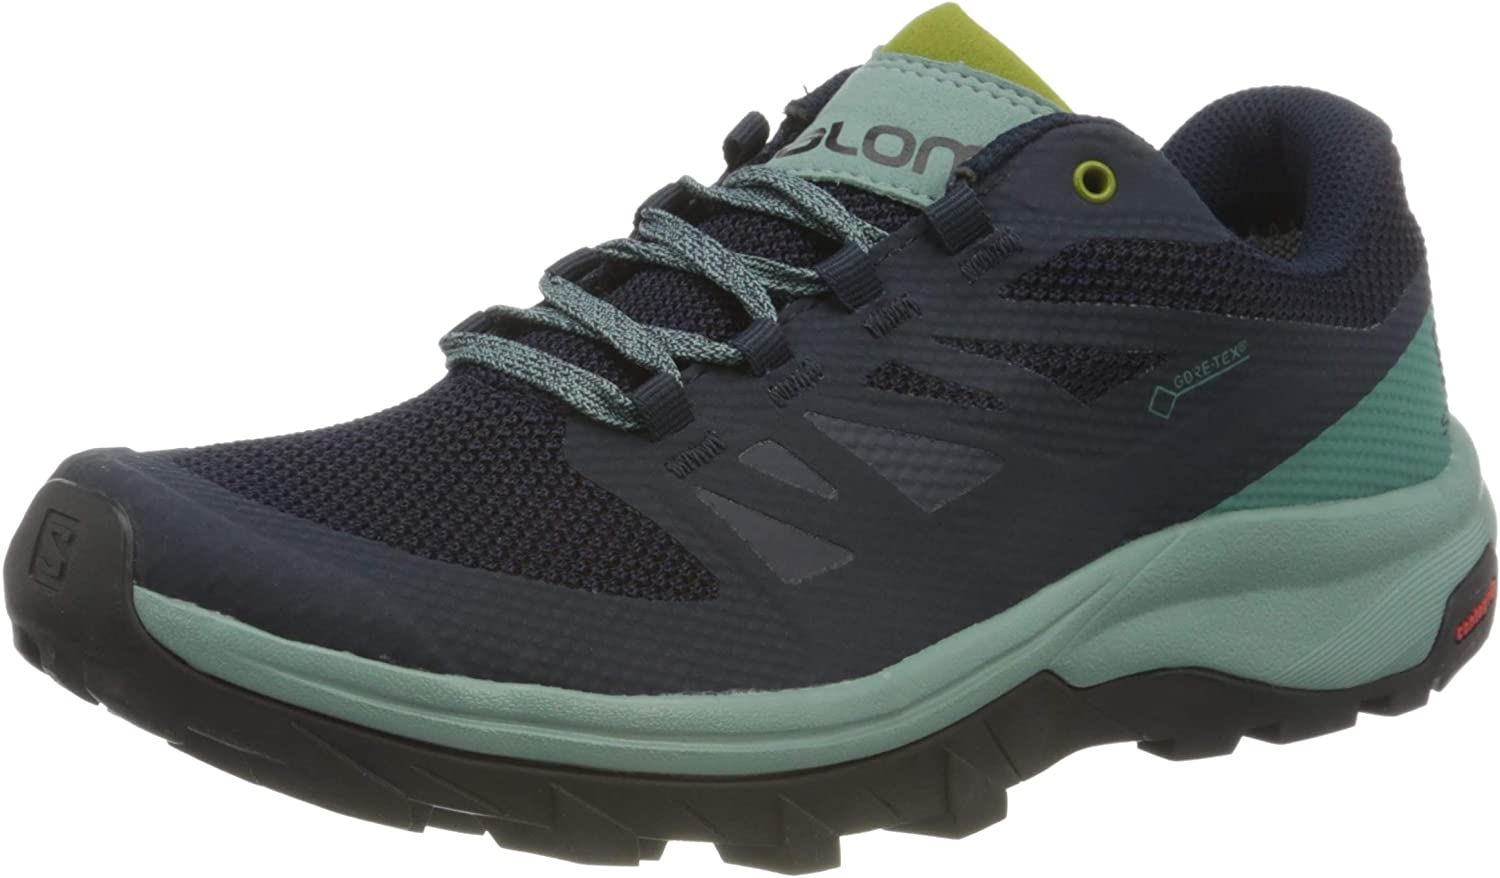 | Salomon Women's Outline GTX W Hiking Shoes | Hiking Shoes